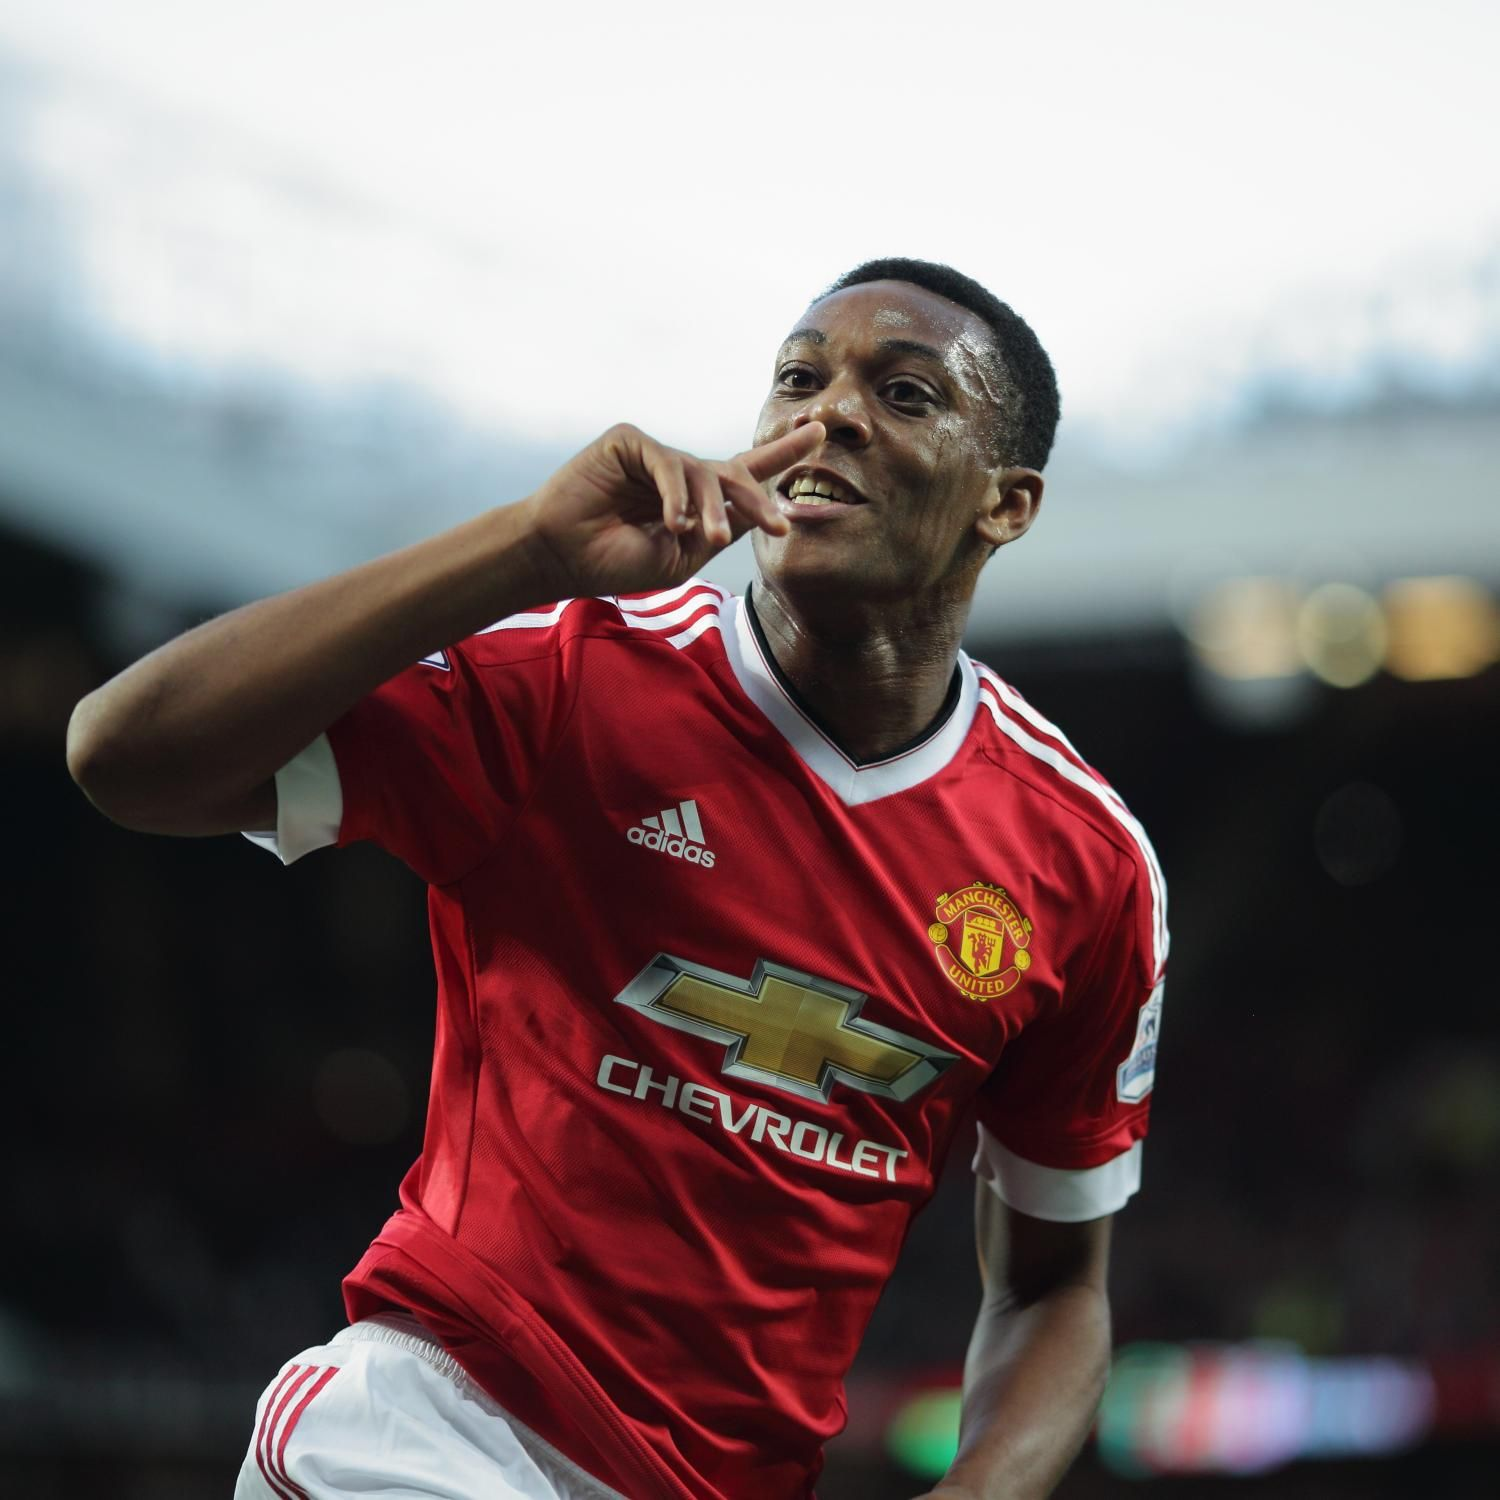 Will anthony martial return for manchester united against hull city manchester evening news - Anthony Martial Scoring On His Manchester United Debut Against Liverpool Fc